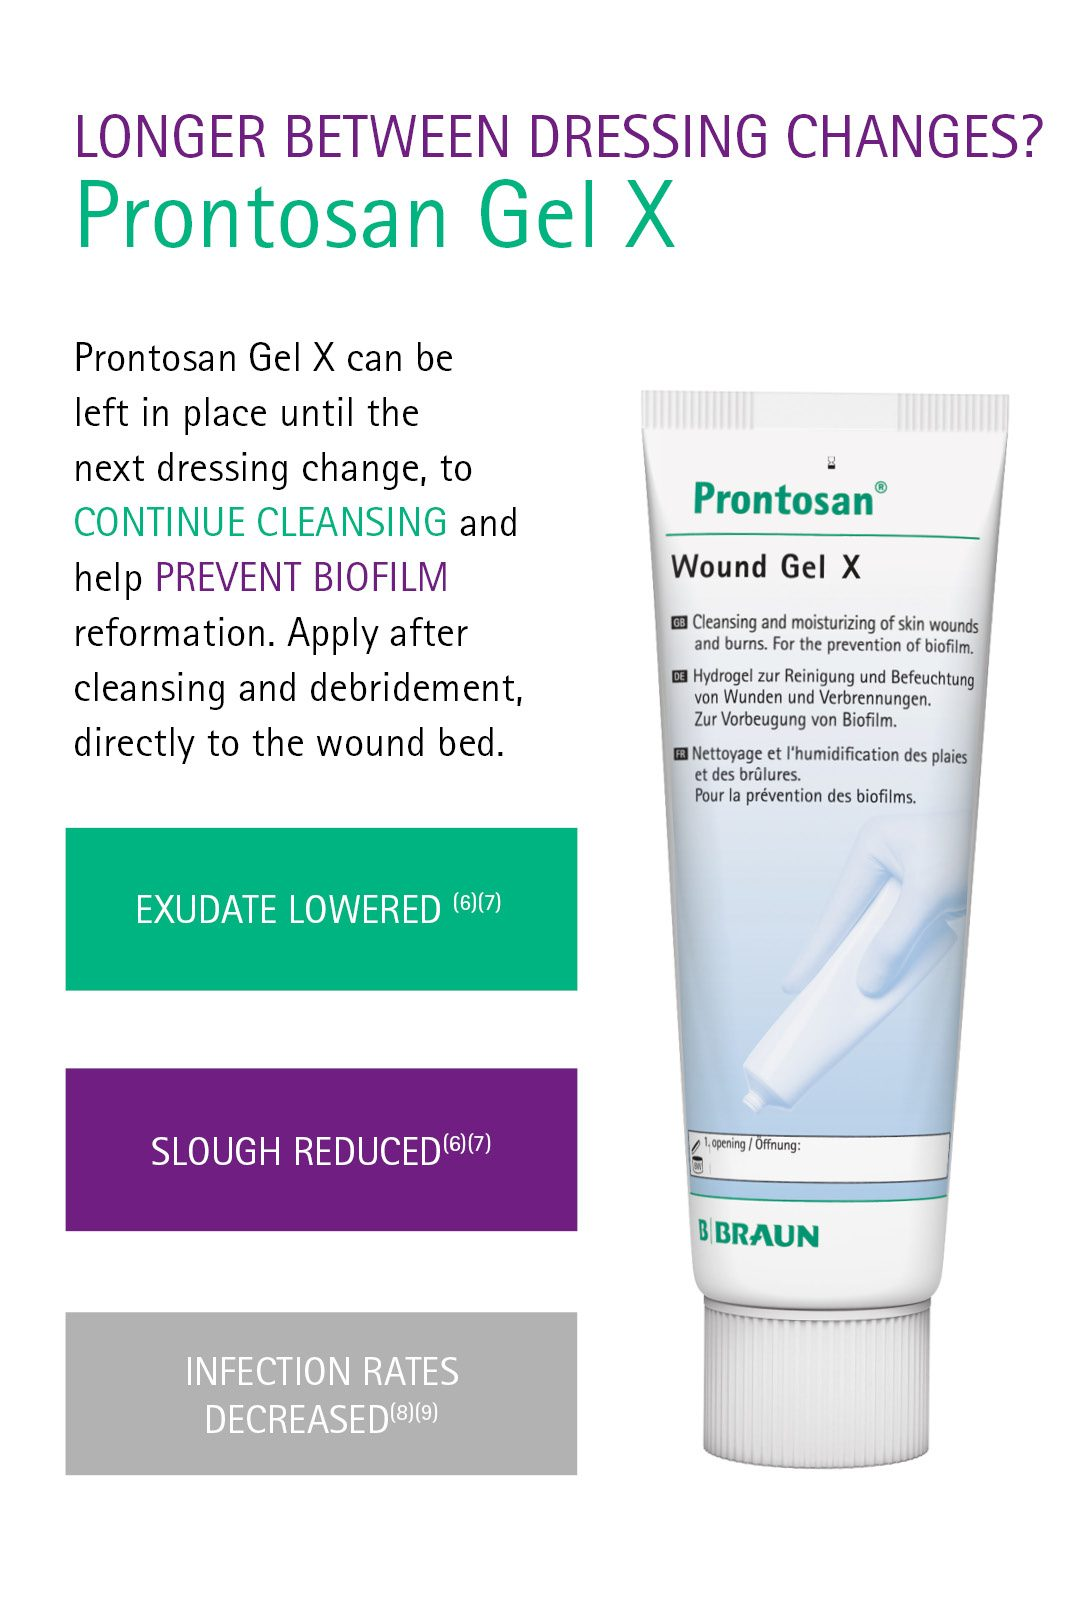 Prontosan for longer time between dressing changes